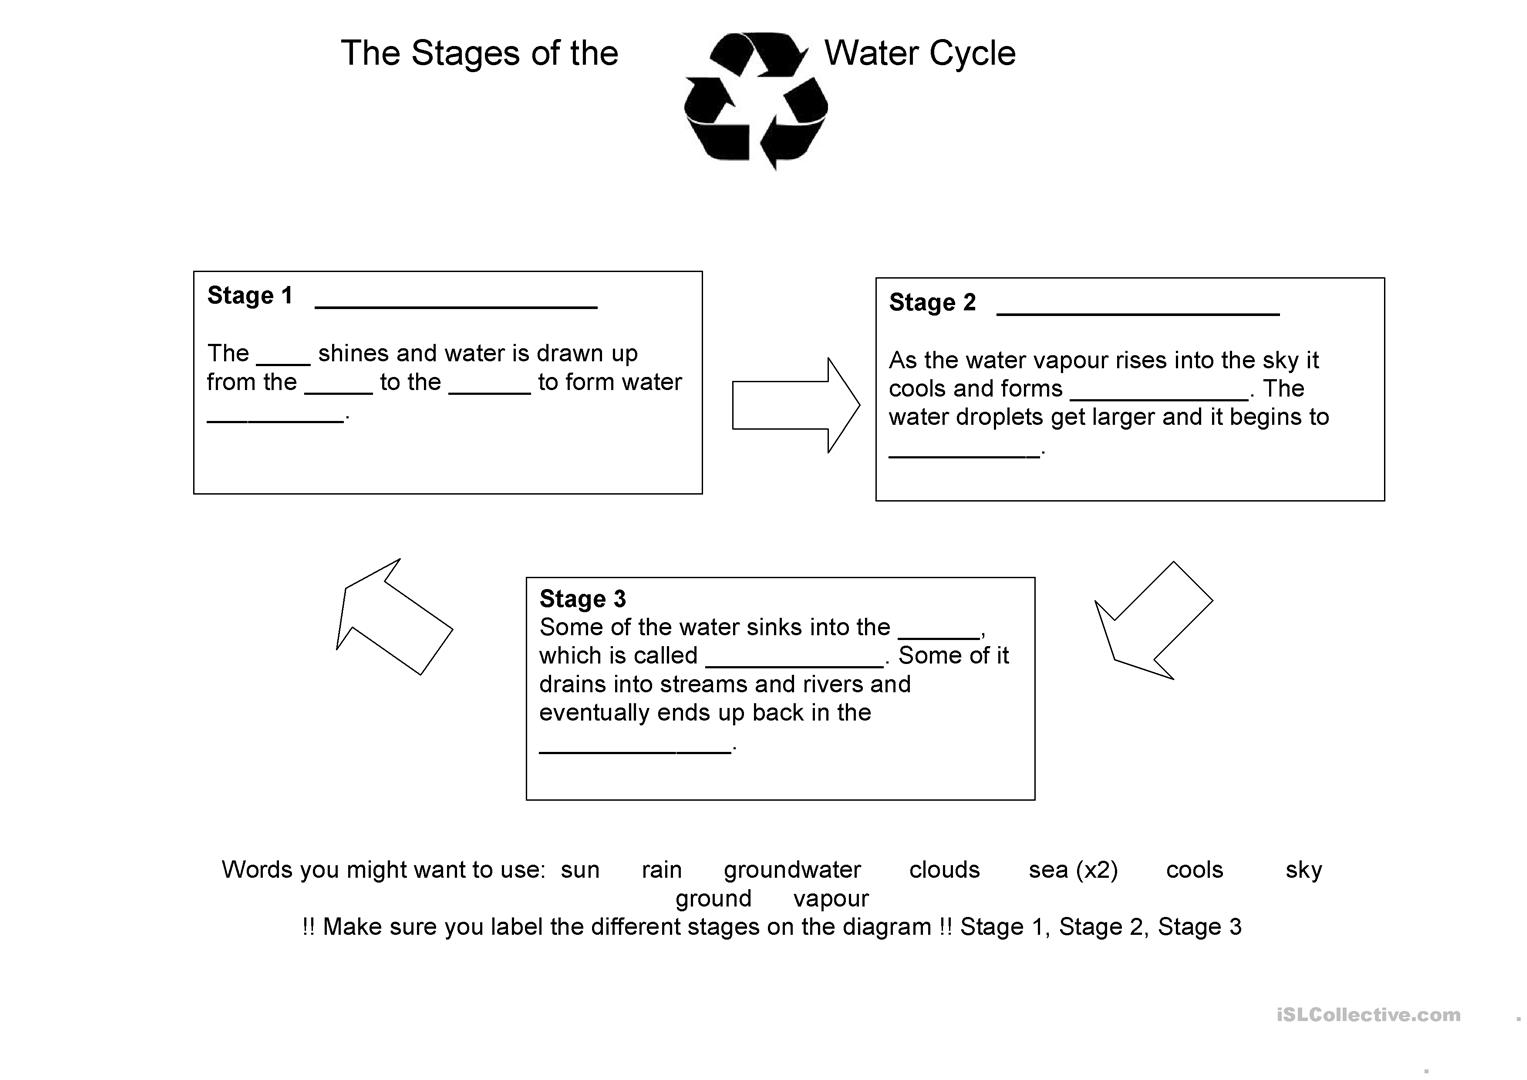 water cycle activity worksheet free esl printable worksheets made by teachers. Black Bedroom Furniture Sets. Home Design Ideas